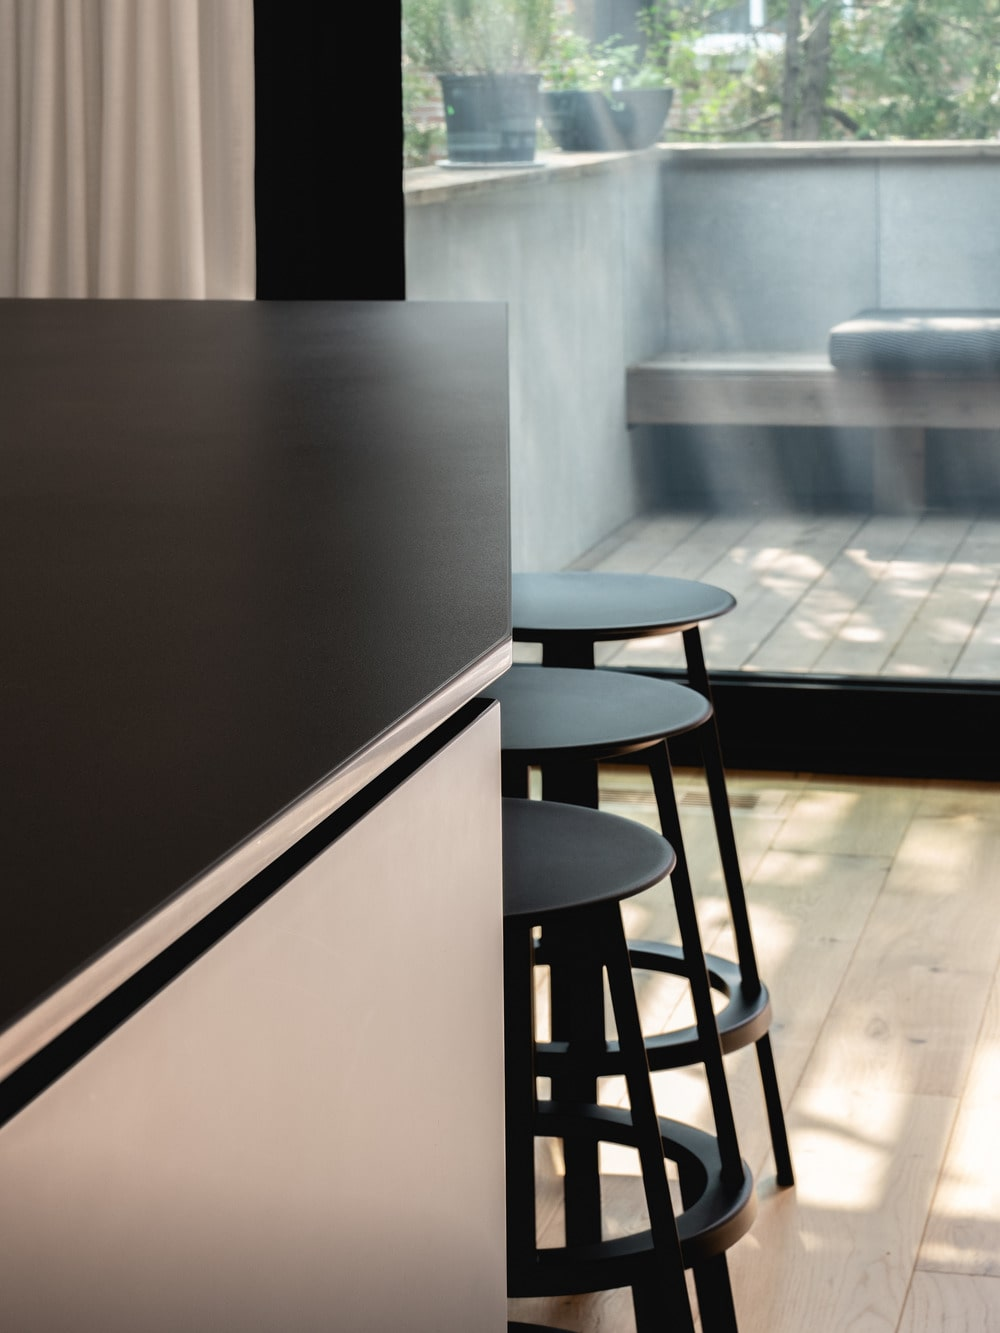 This is a close look at the kitchen island and its three black kitchen stools.